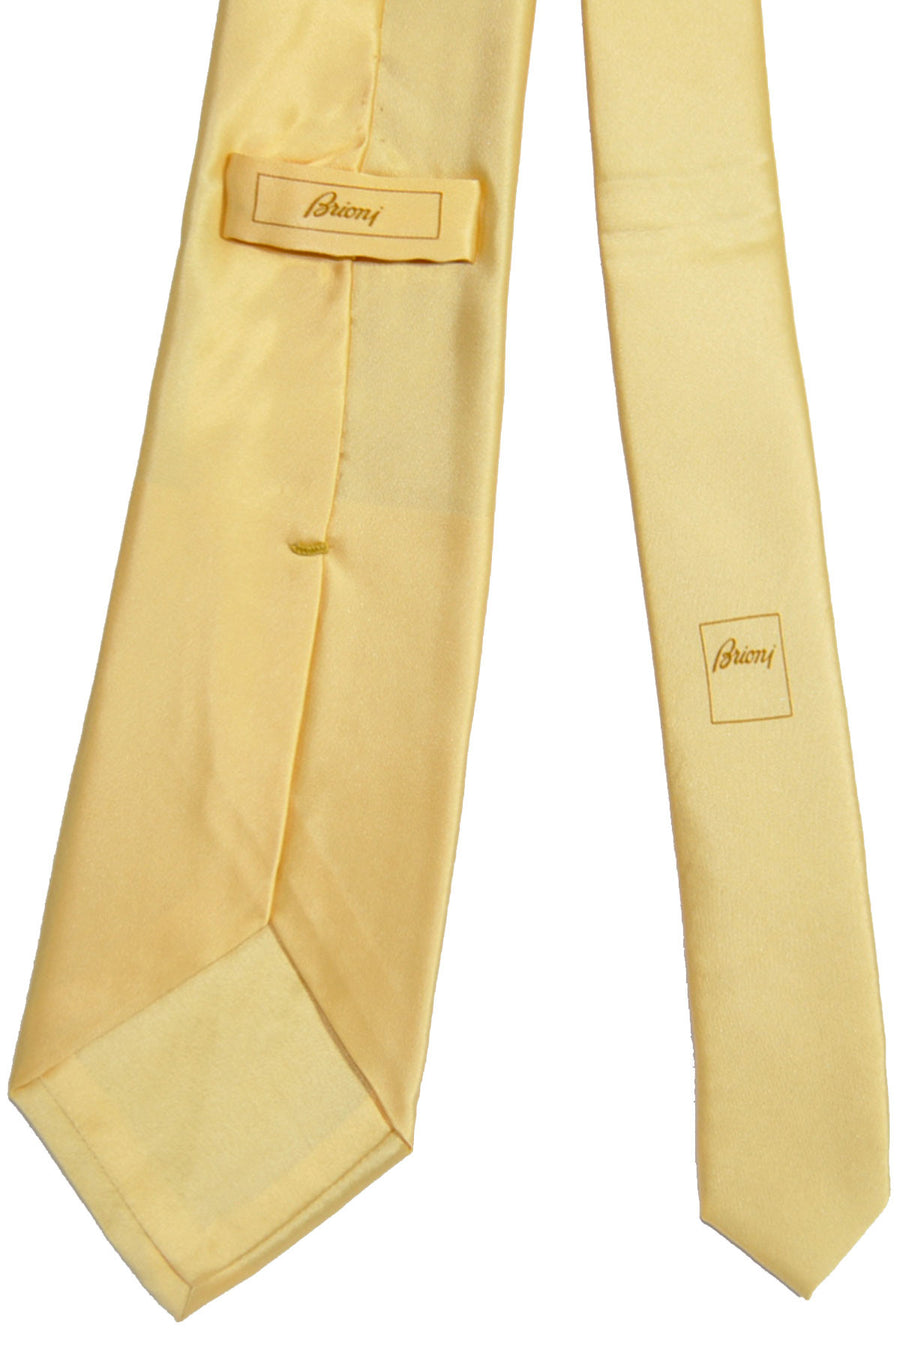 Brioni Tie Butter Cream Solid Design FINAL SALE